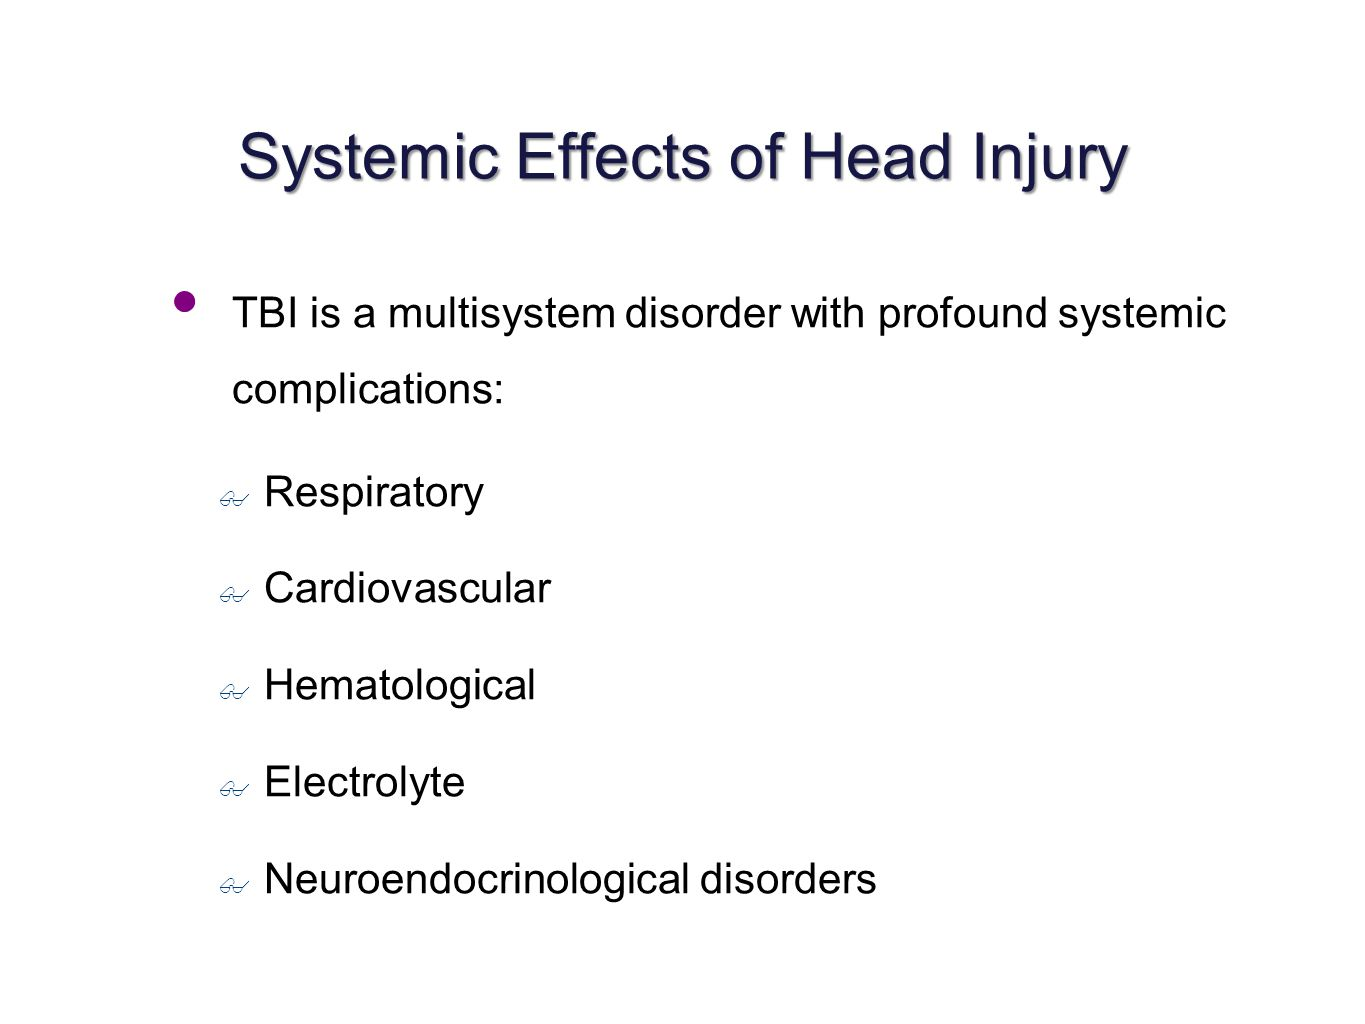 Systemic Effects of Head Injury TBI is a multisystem disorder with profound systemic complications: ✤ Respiratory ✤ Cardiovascular ✤ Hematological ✤ Electrolyte ✤ Neuroendocrinological disorders